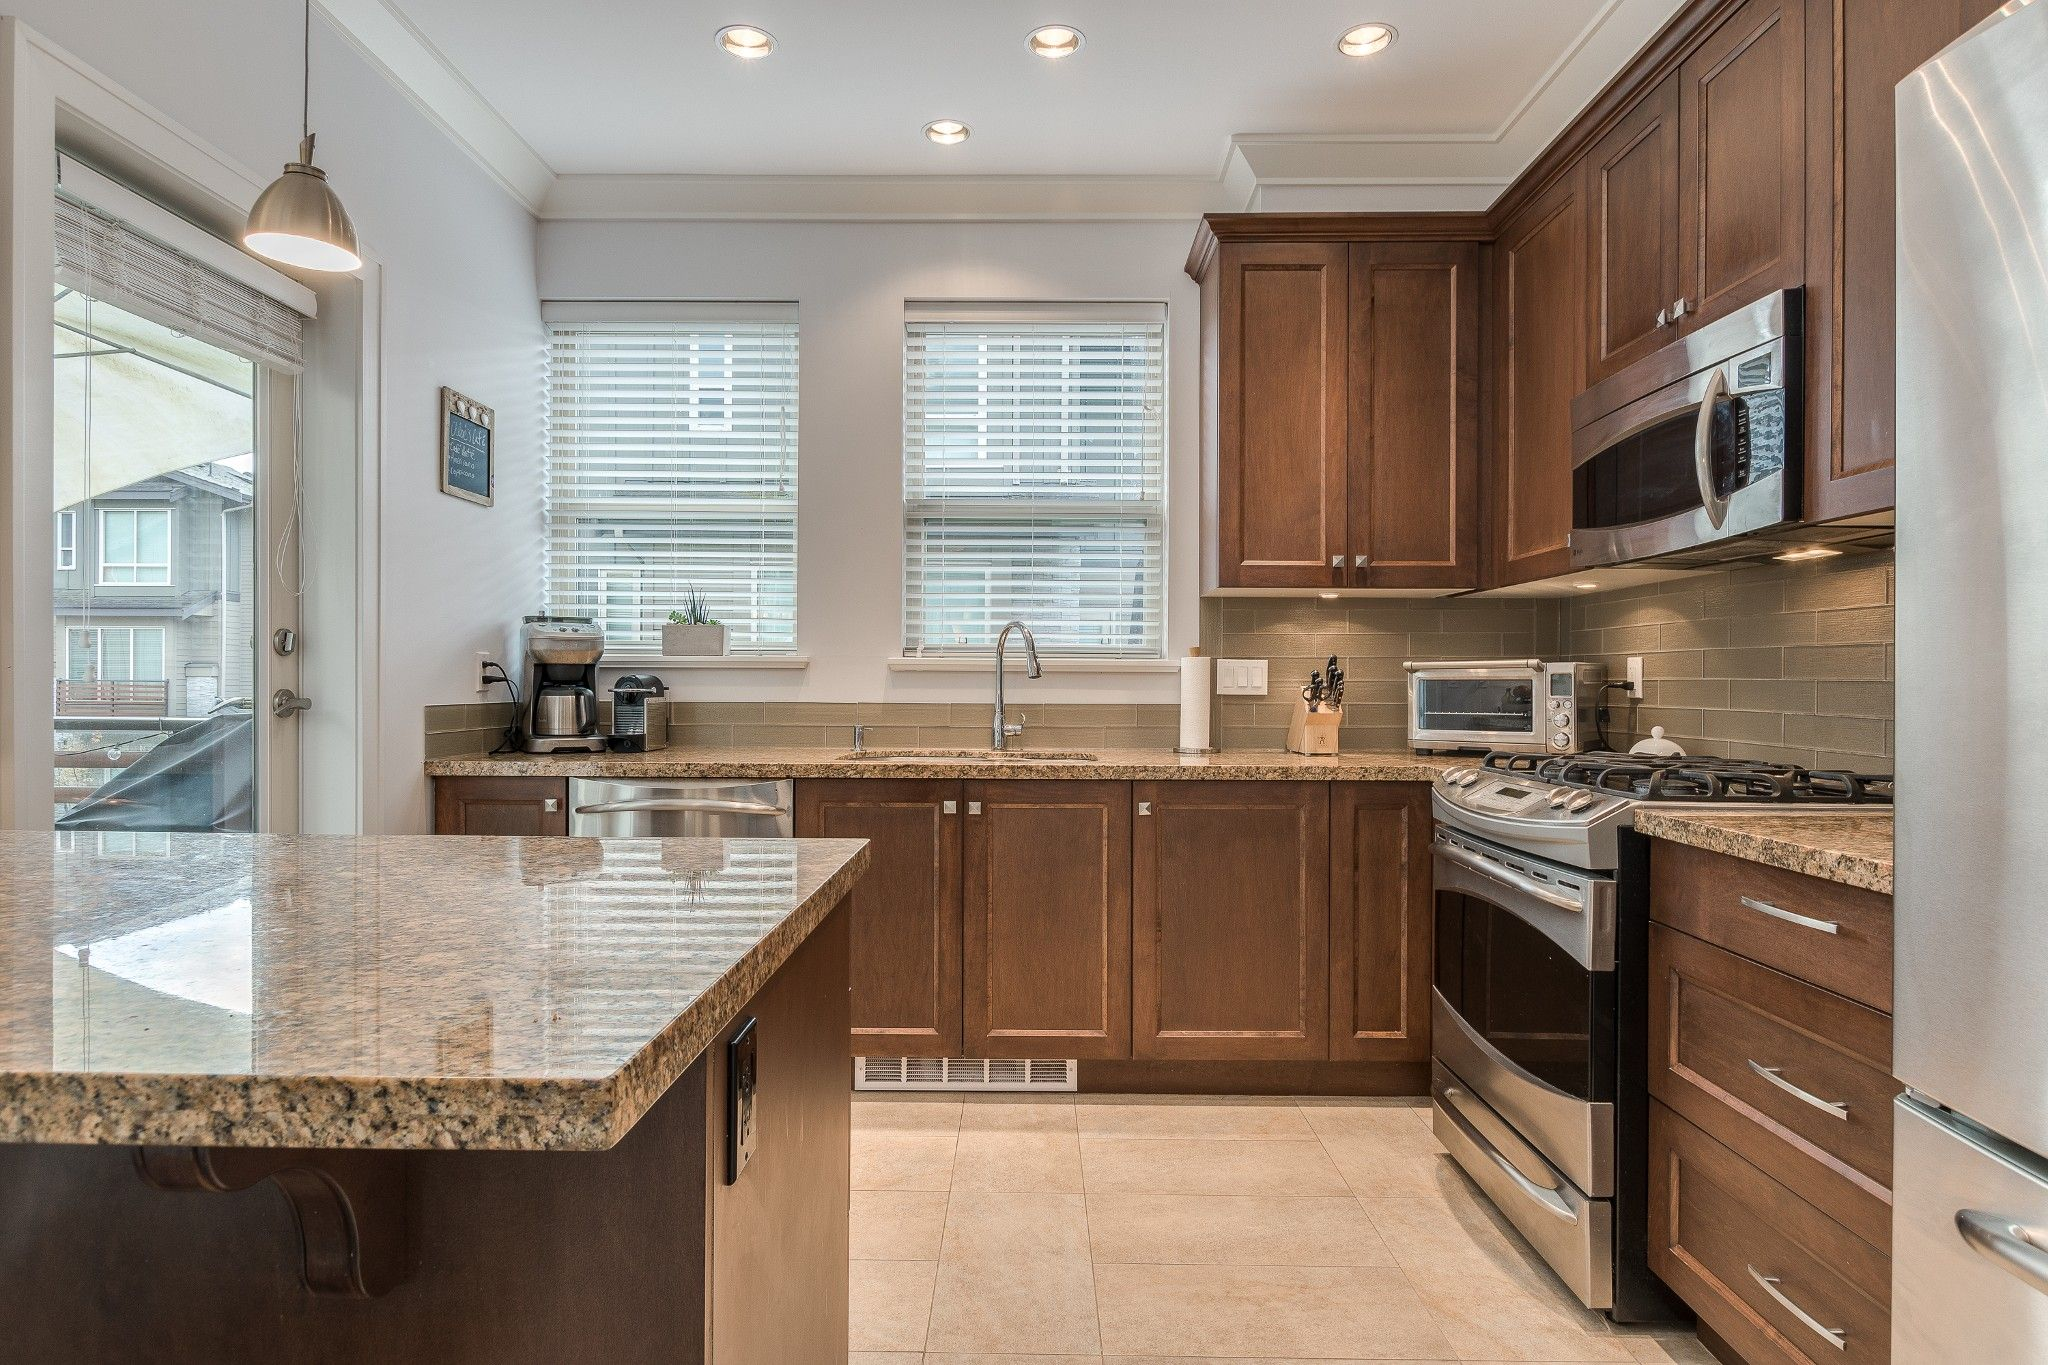 Photo 5: Photos: 24 897 Premier Street in : Lynnmour Townhouse for sale (North Vancouver)